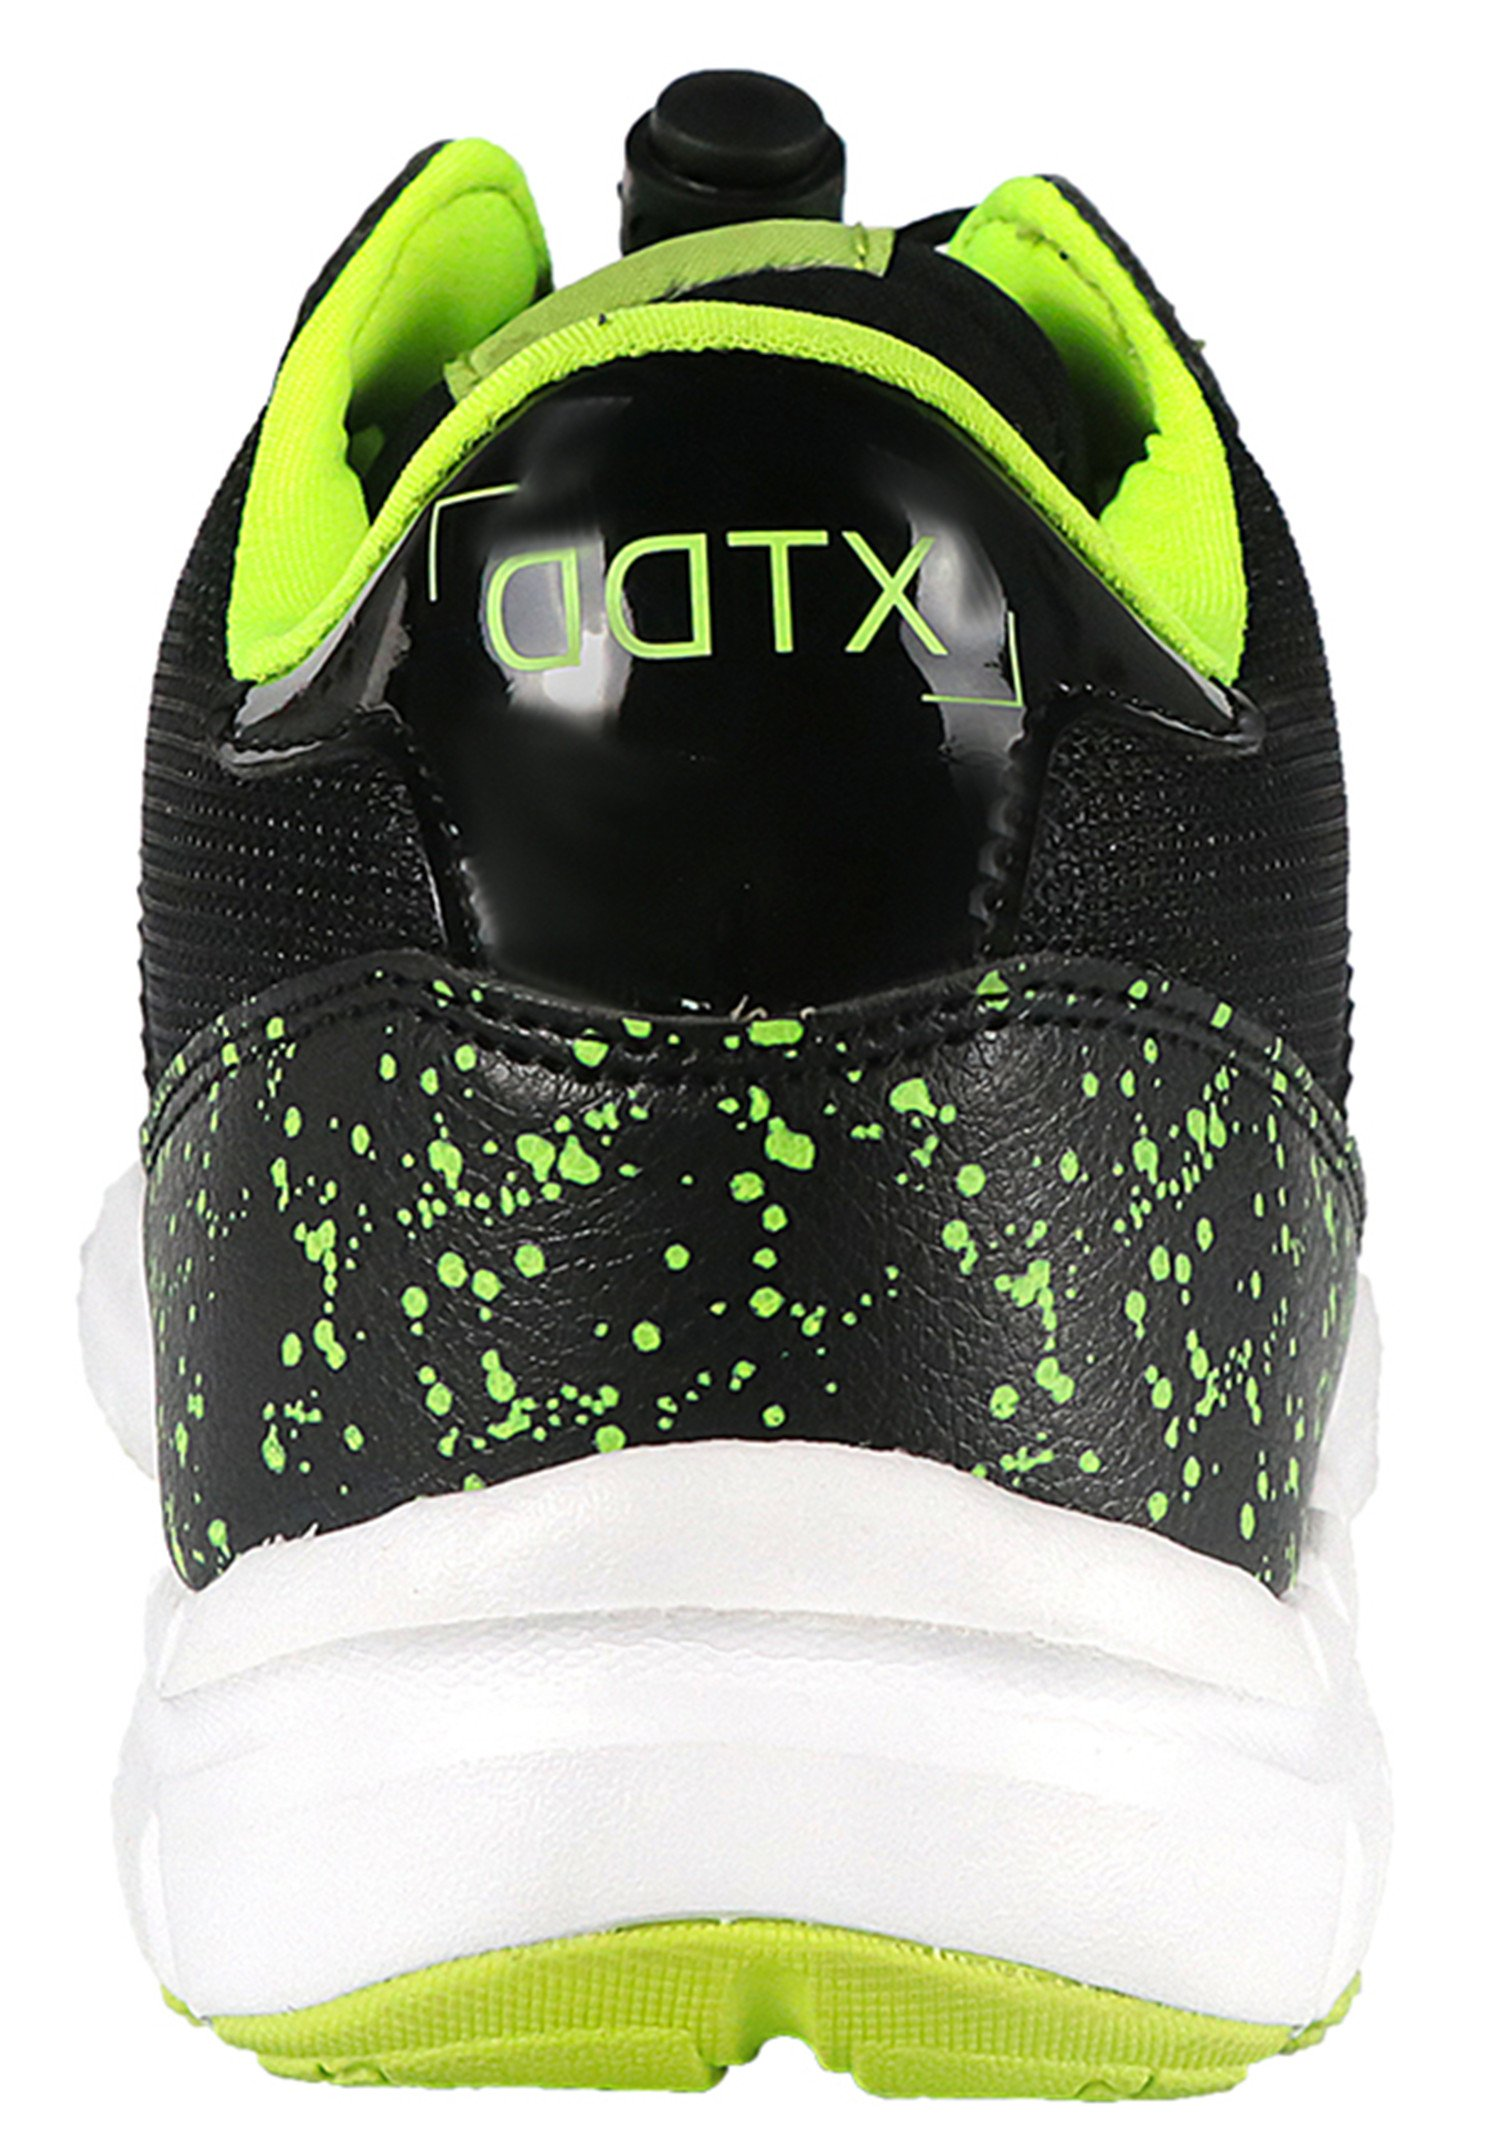 DDTX Spring and Summer Lightweight Safety Sneakers Mens' Steel Toe Work Shoes Black (11.5) by DDTX (Image #8)